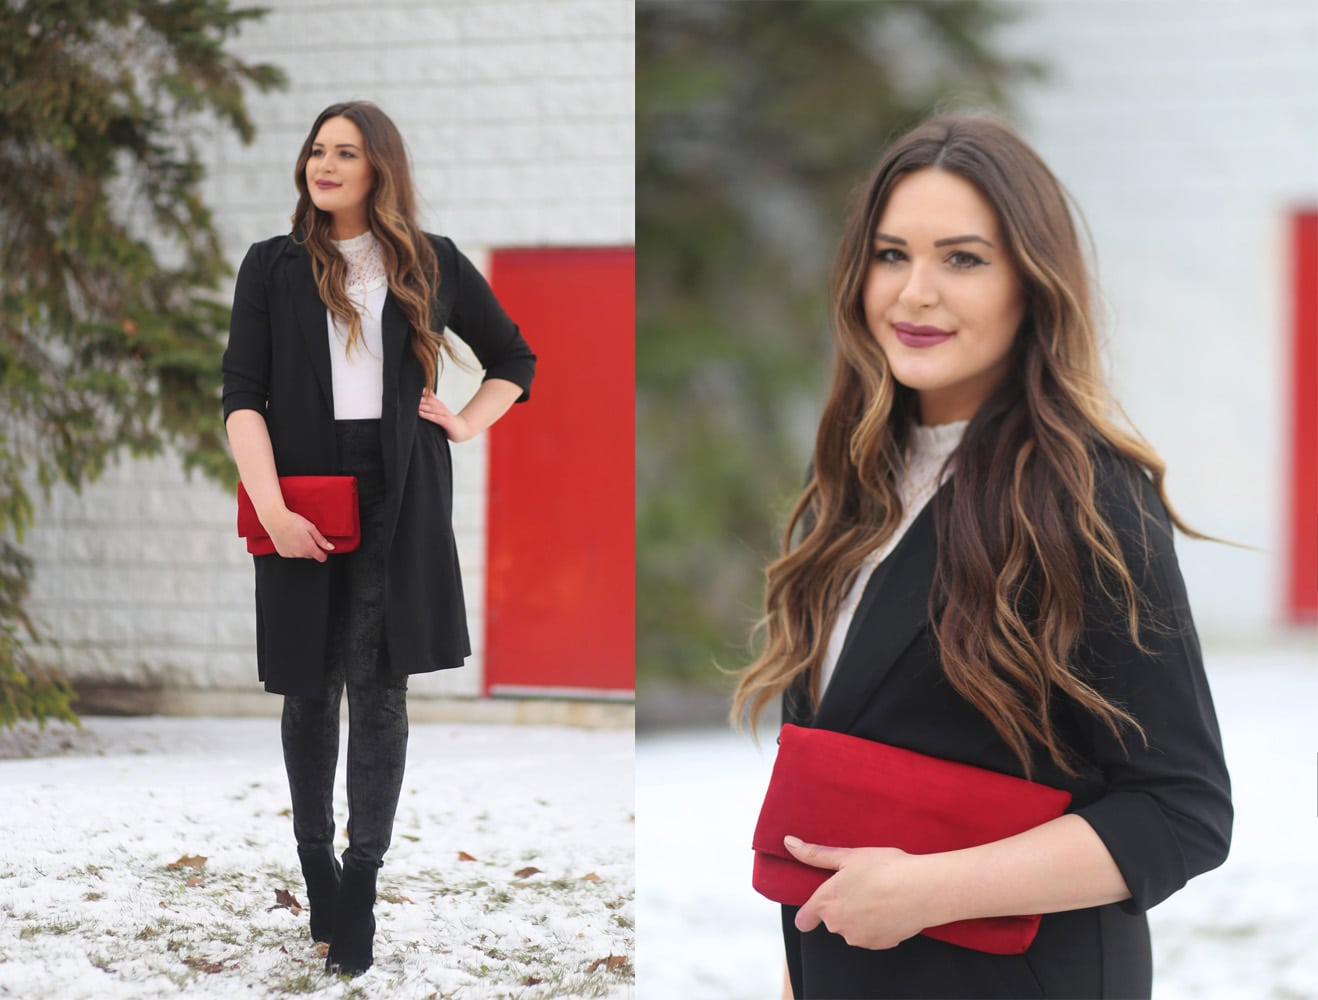 Marie's Bazaar Mash Elle | beauty bloggers | holiday outfit inspiration | red clutch | black and white holiday outfits